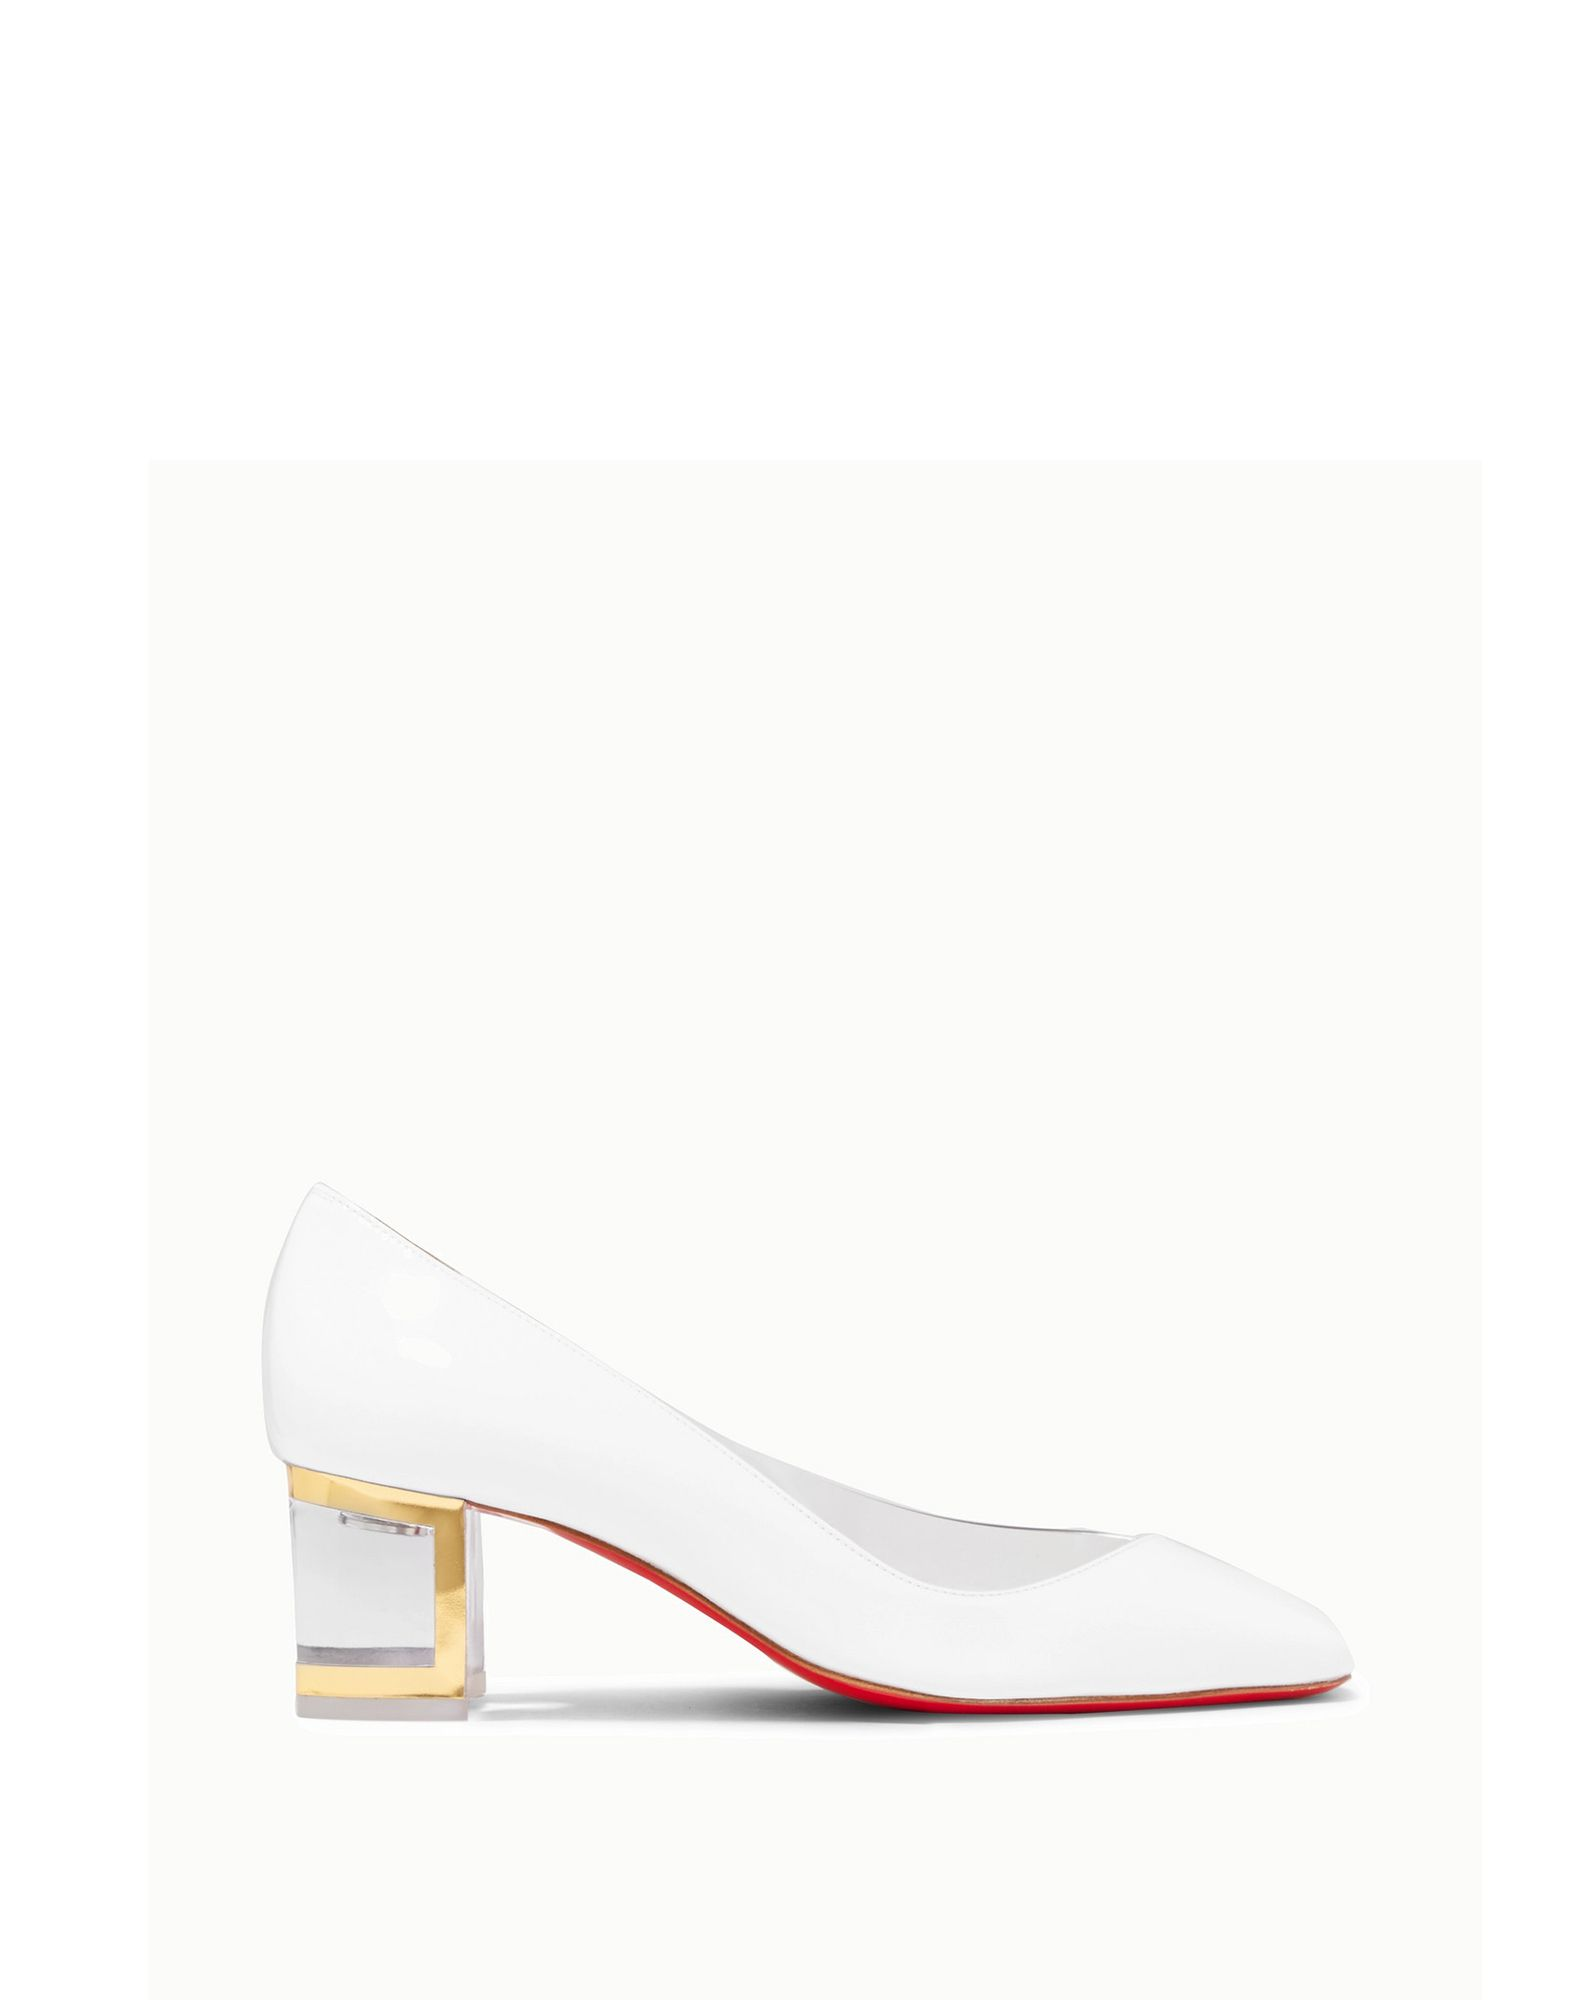 CHRISTIAN LOUBOUTIN Pumps. varnished effect, no appliqués, two-tone, square toeline, square heel, acrylic heel, leather lining, leather sole, contains non-textile parts of animal origin, small sized. Soft Leather, PVC - Polyvinyl chloride